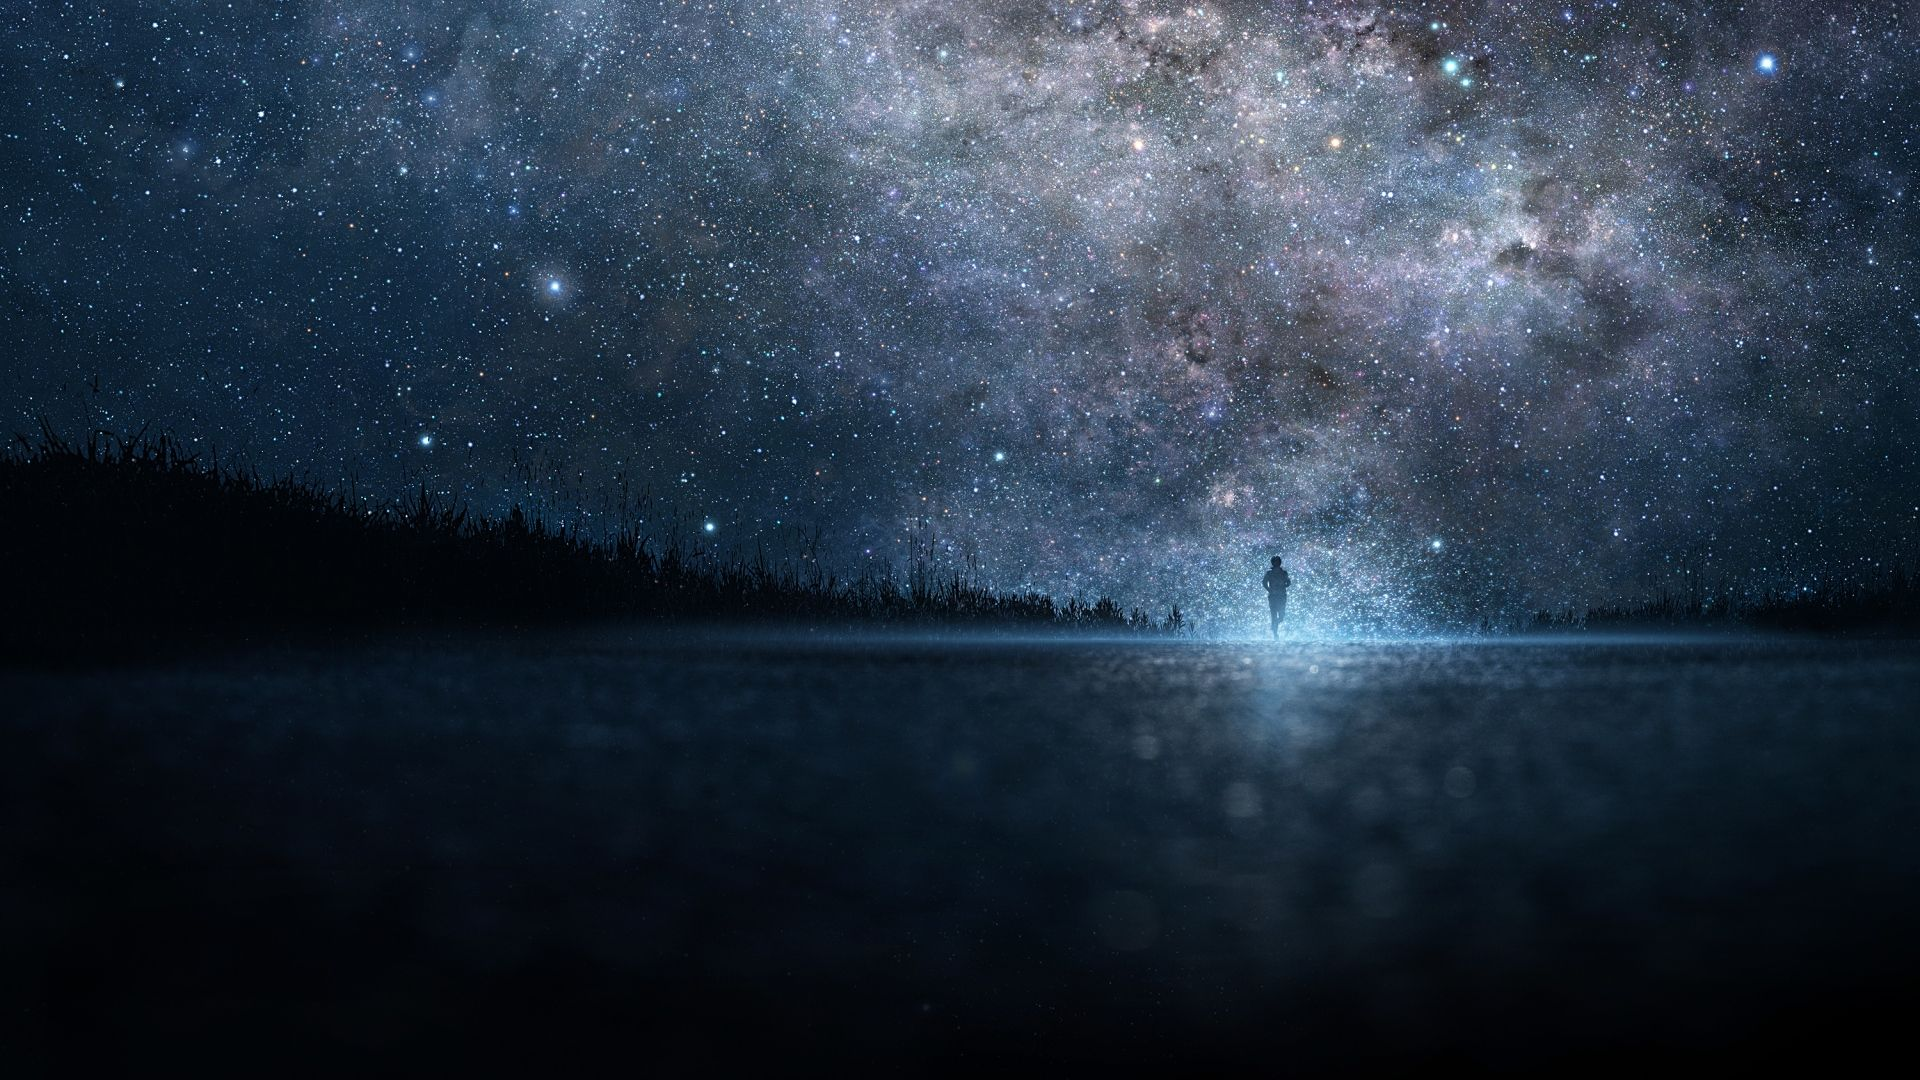 1920x1080 Wallpaper Star Art Sky Night People Silhouette Wallpaper Space Desktop Wallpaper 1920x1080 Backgrounds Desktop